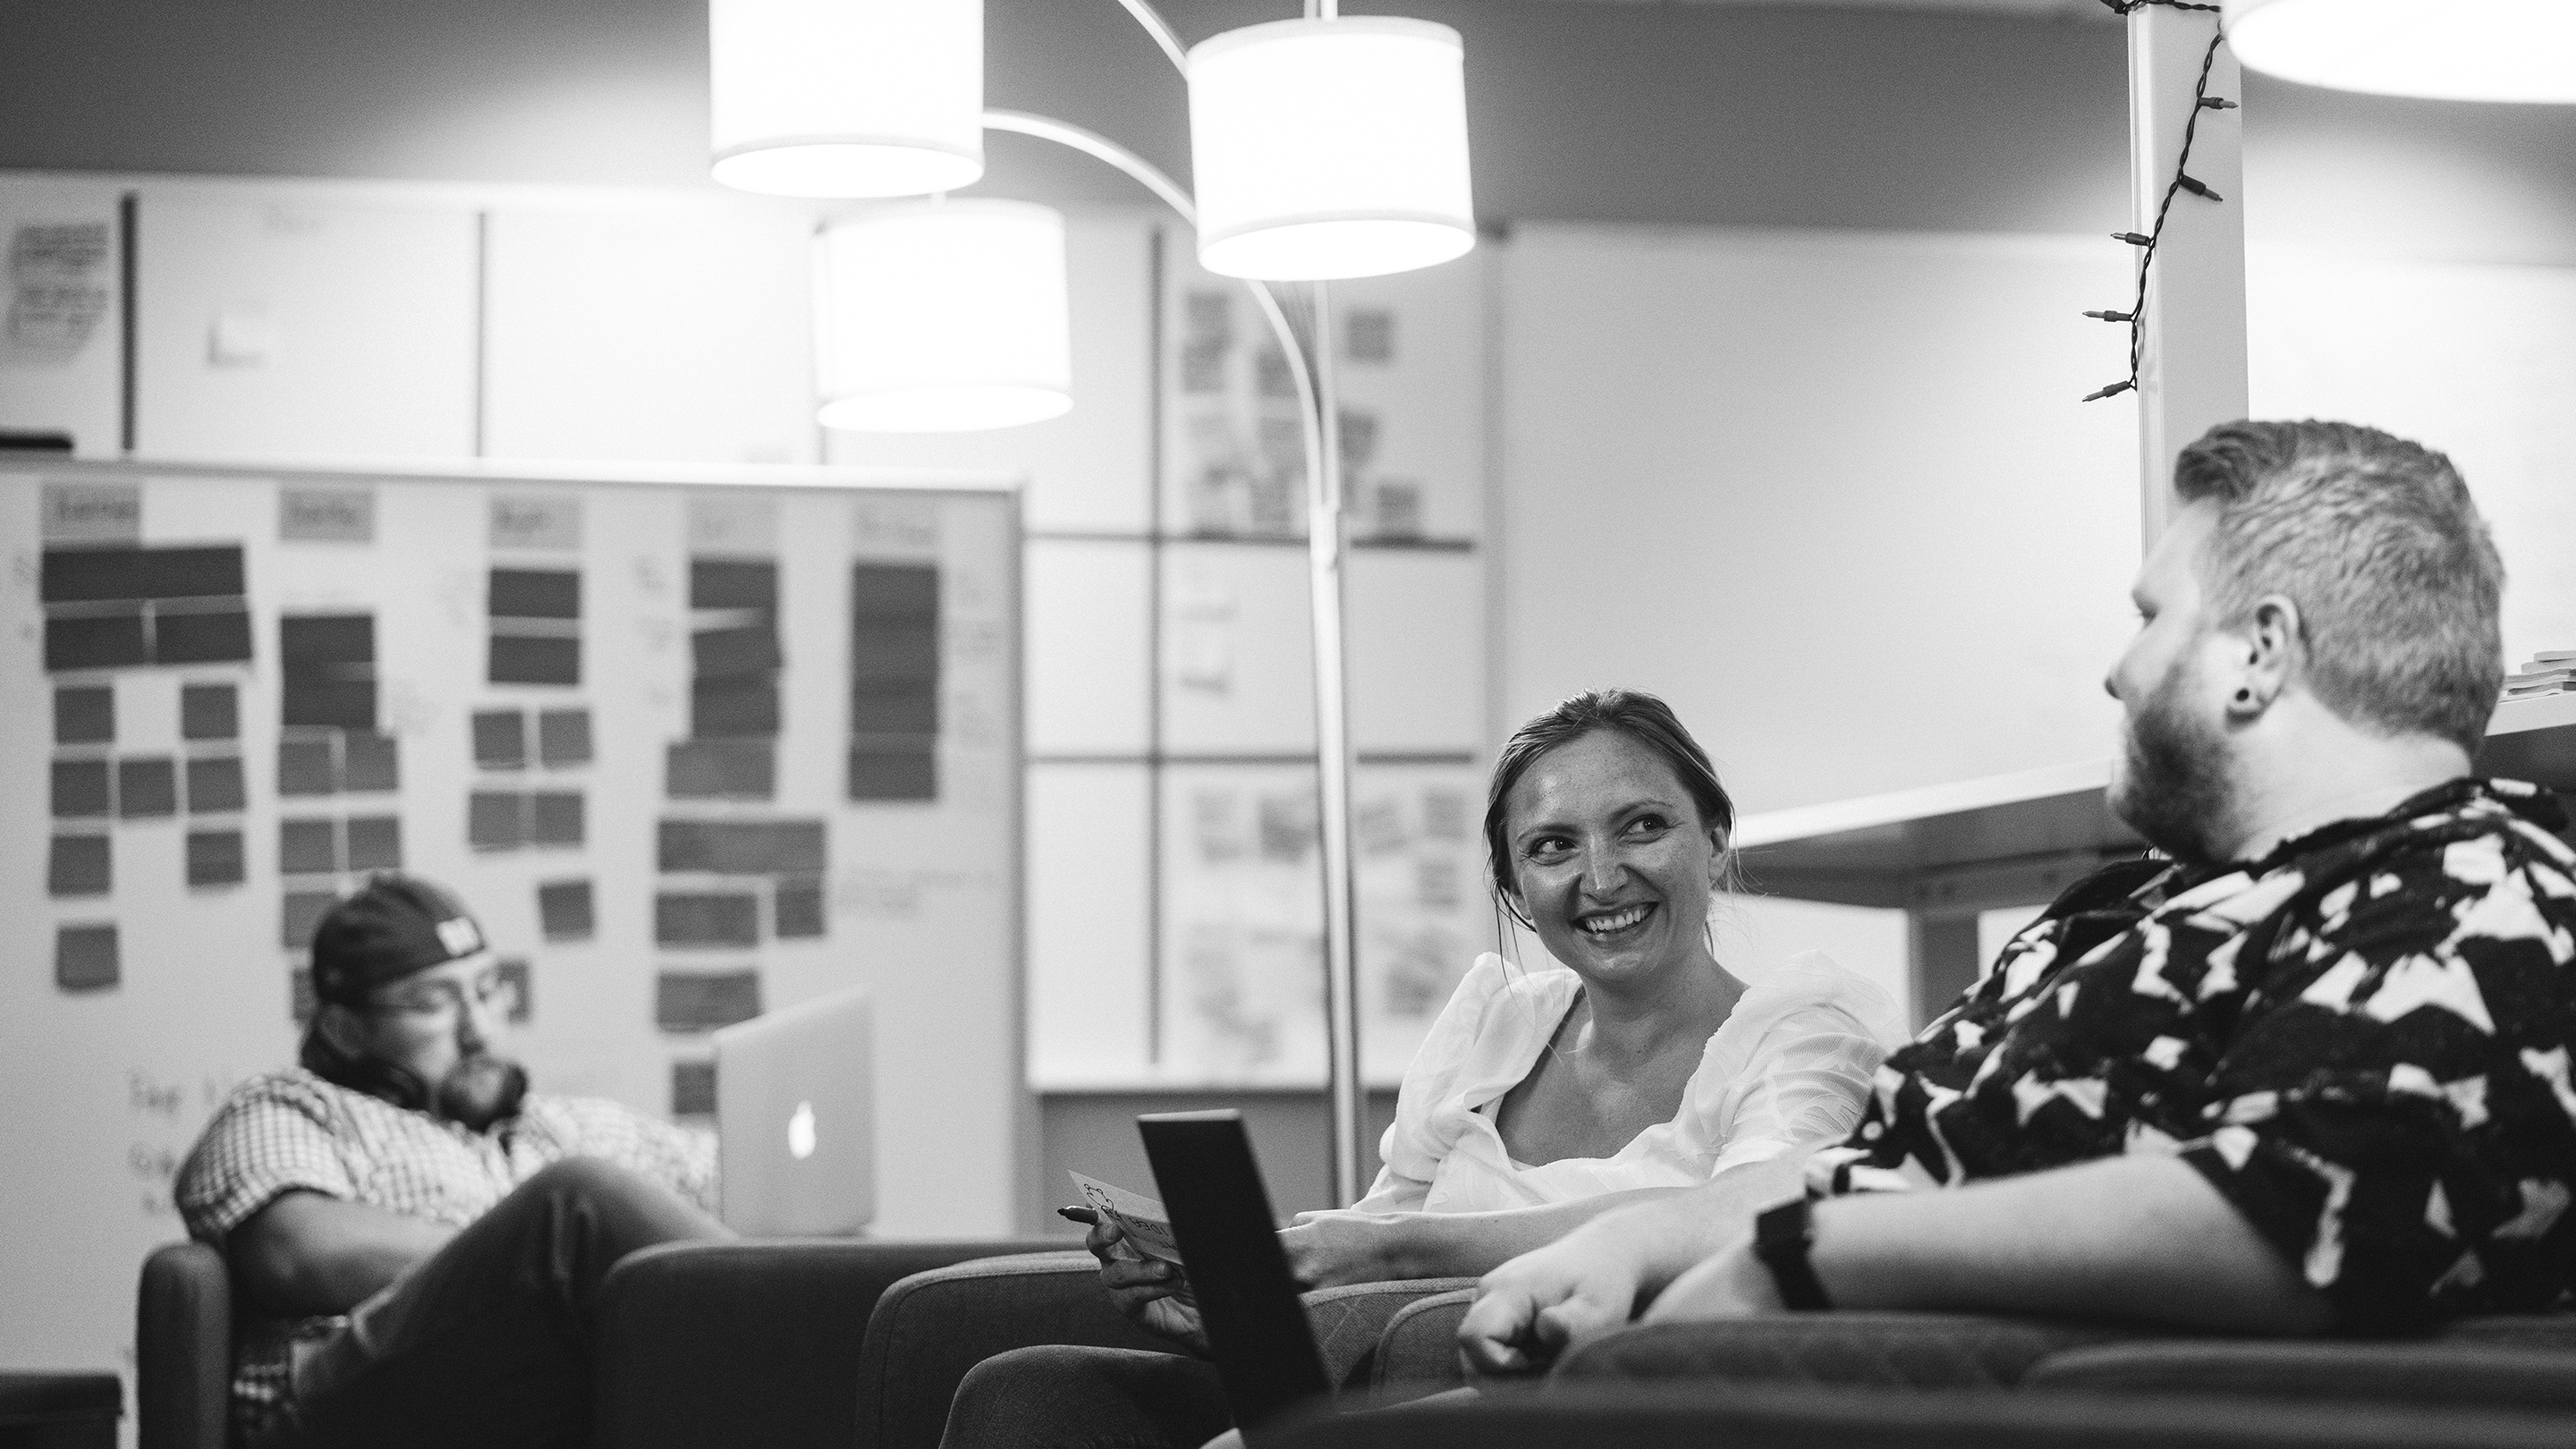 Young man and woman sitting in comfortable chairs smiling and collaborating